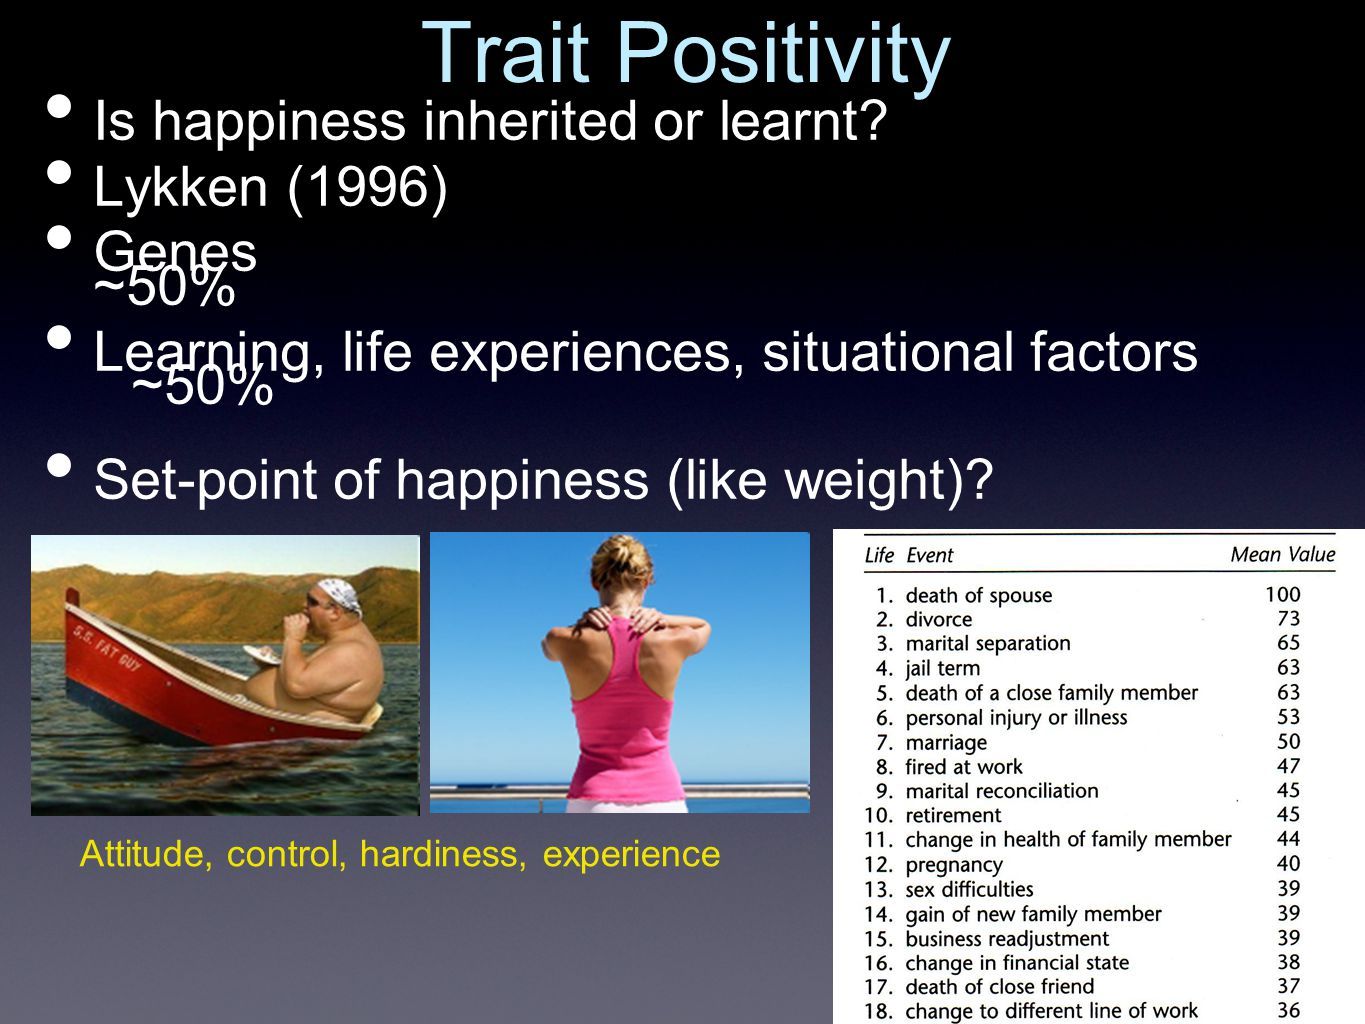 What are the psychological and physical effects of positive mood/ happiness?